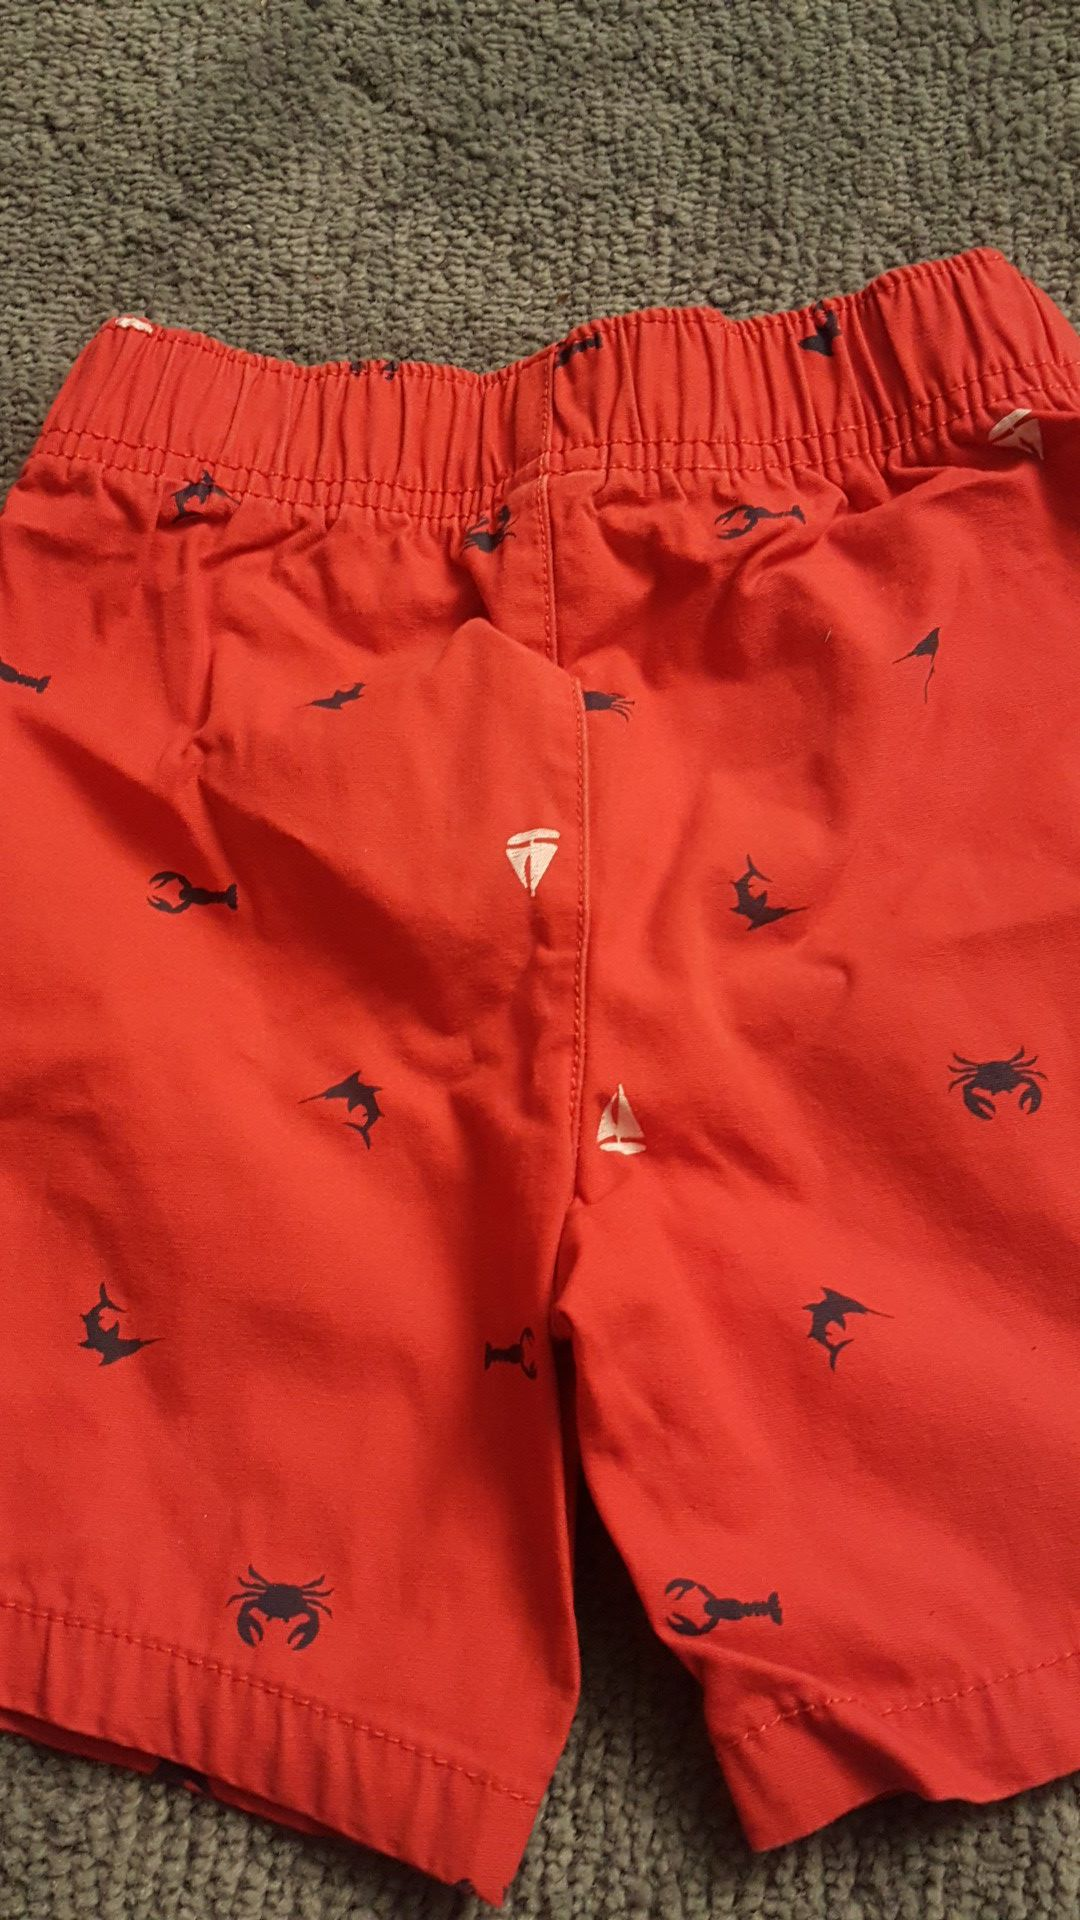 Red shorts size 4t